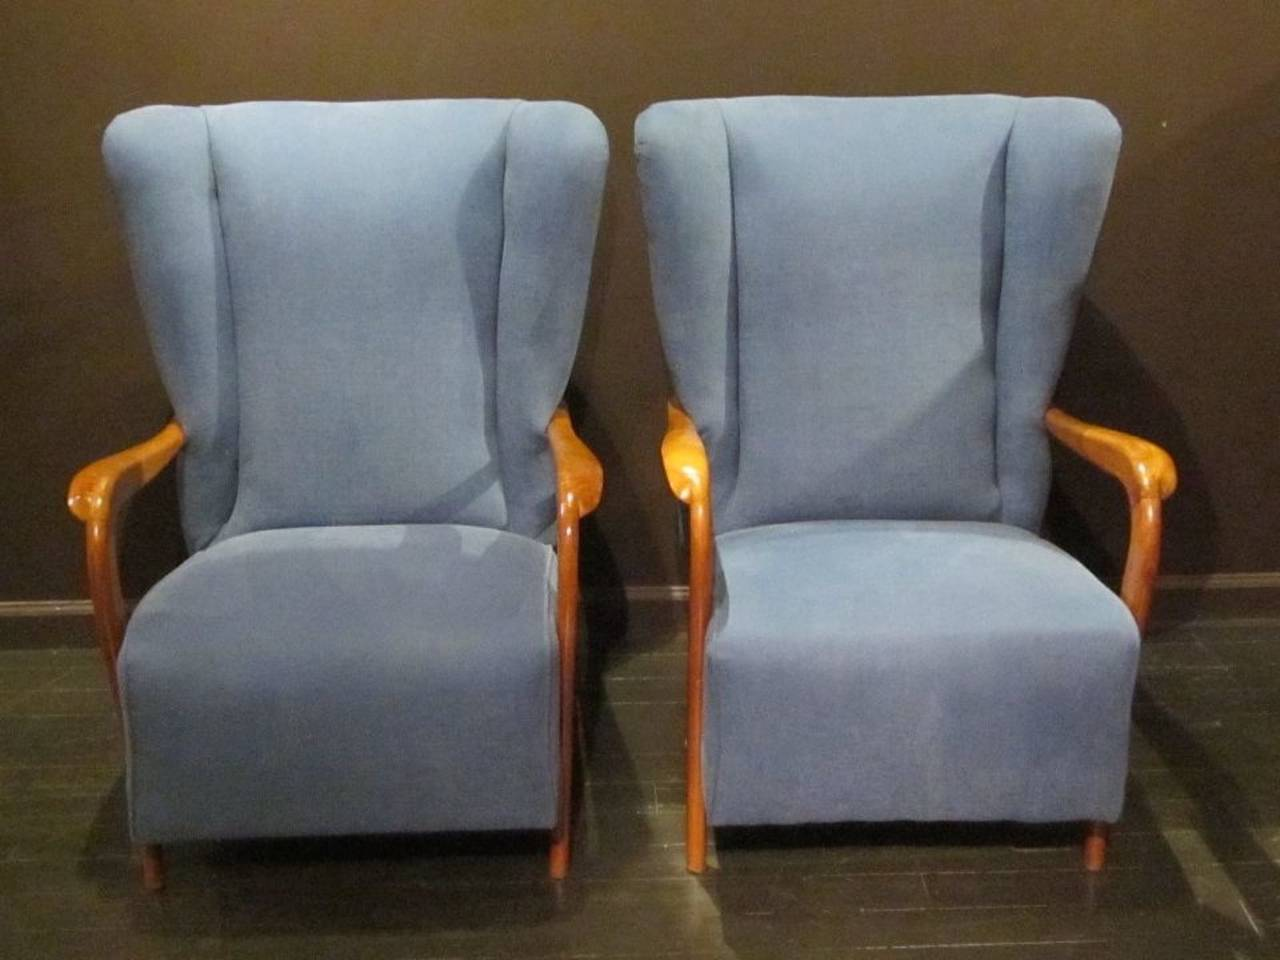 Italian Mid-Century Pair of Upholstered Blue High Back Chairs, Italy, 1960s For Sale